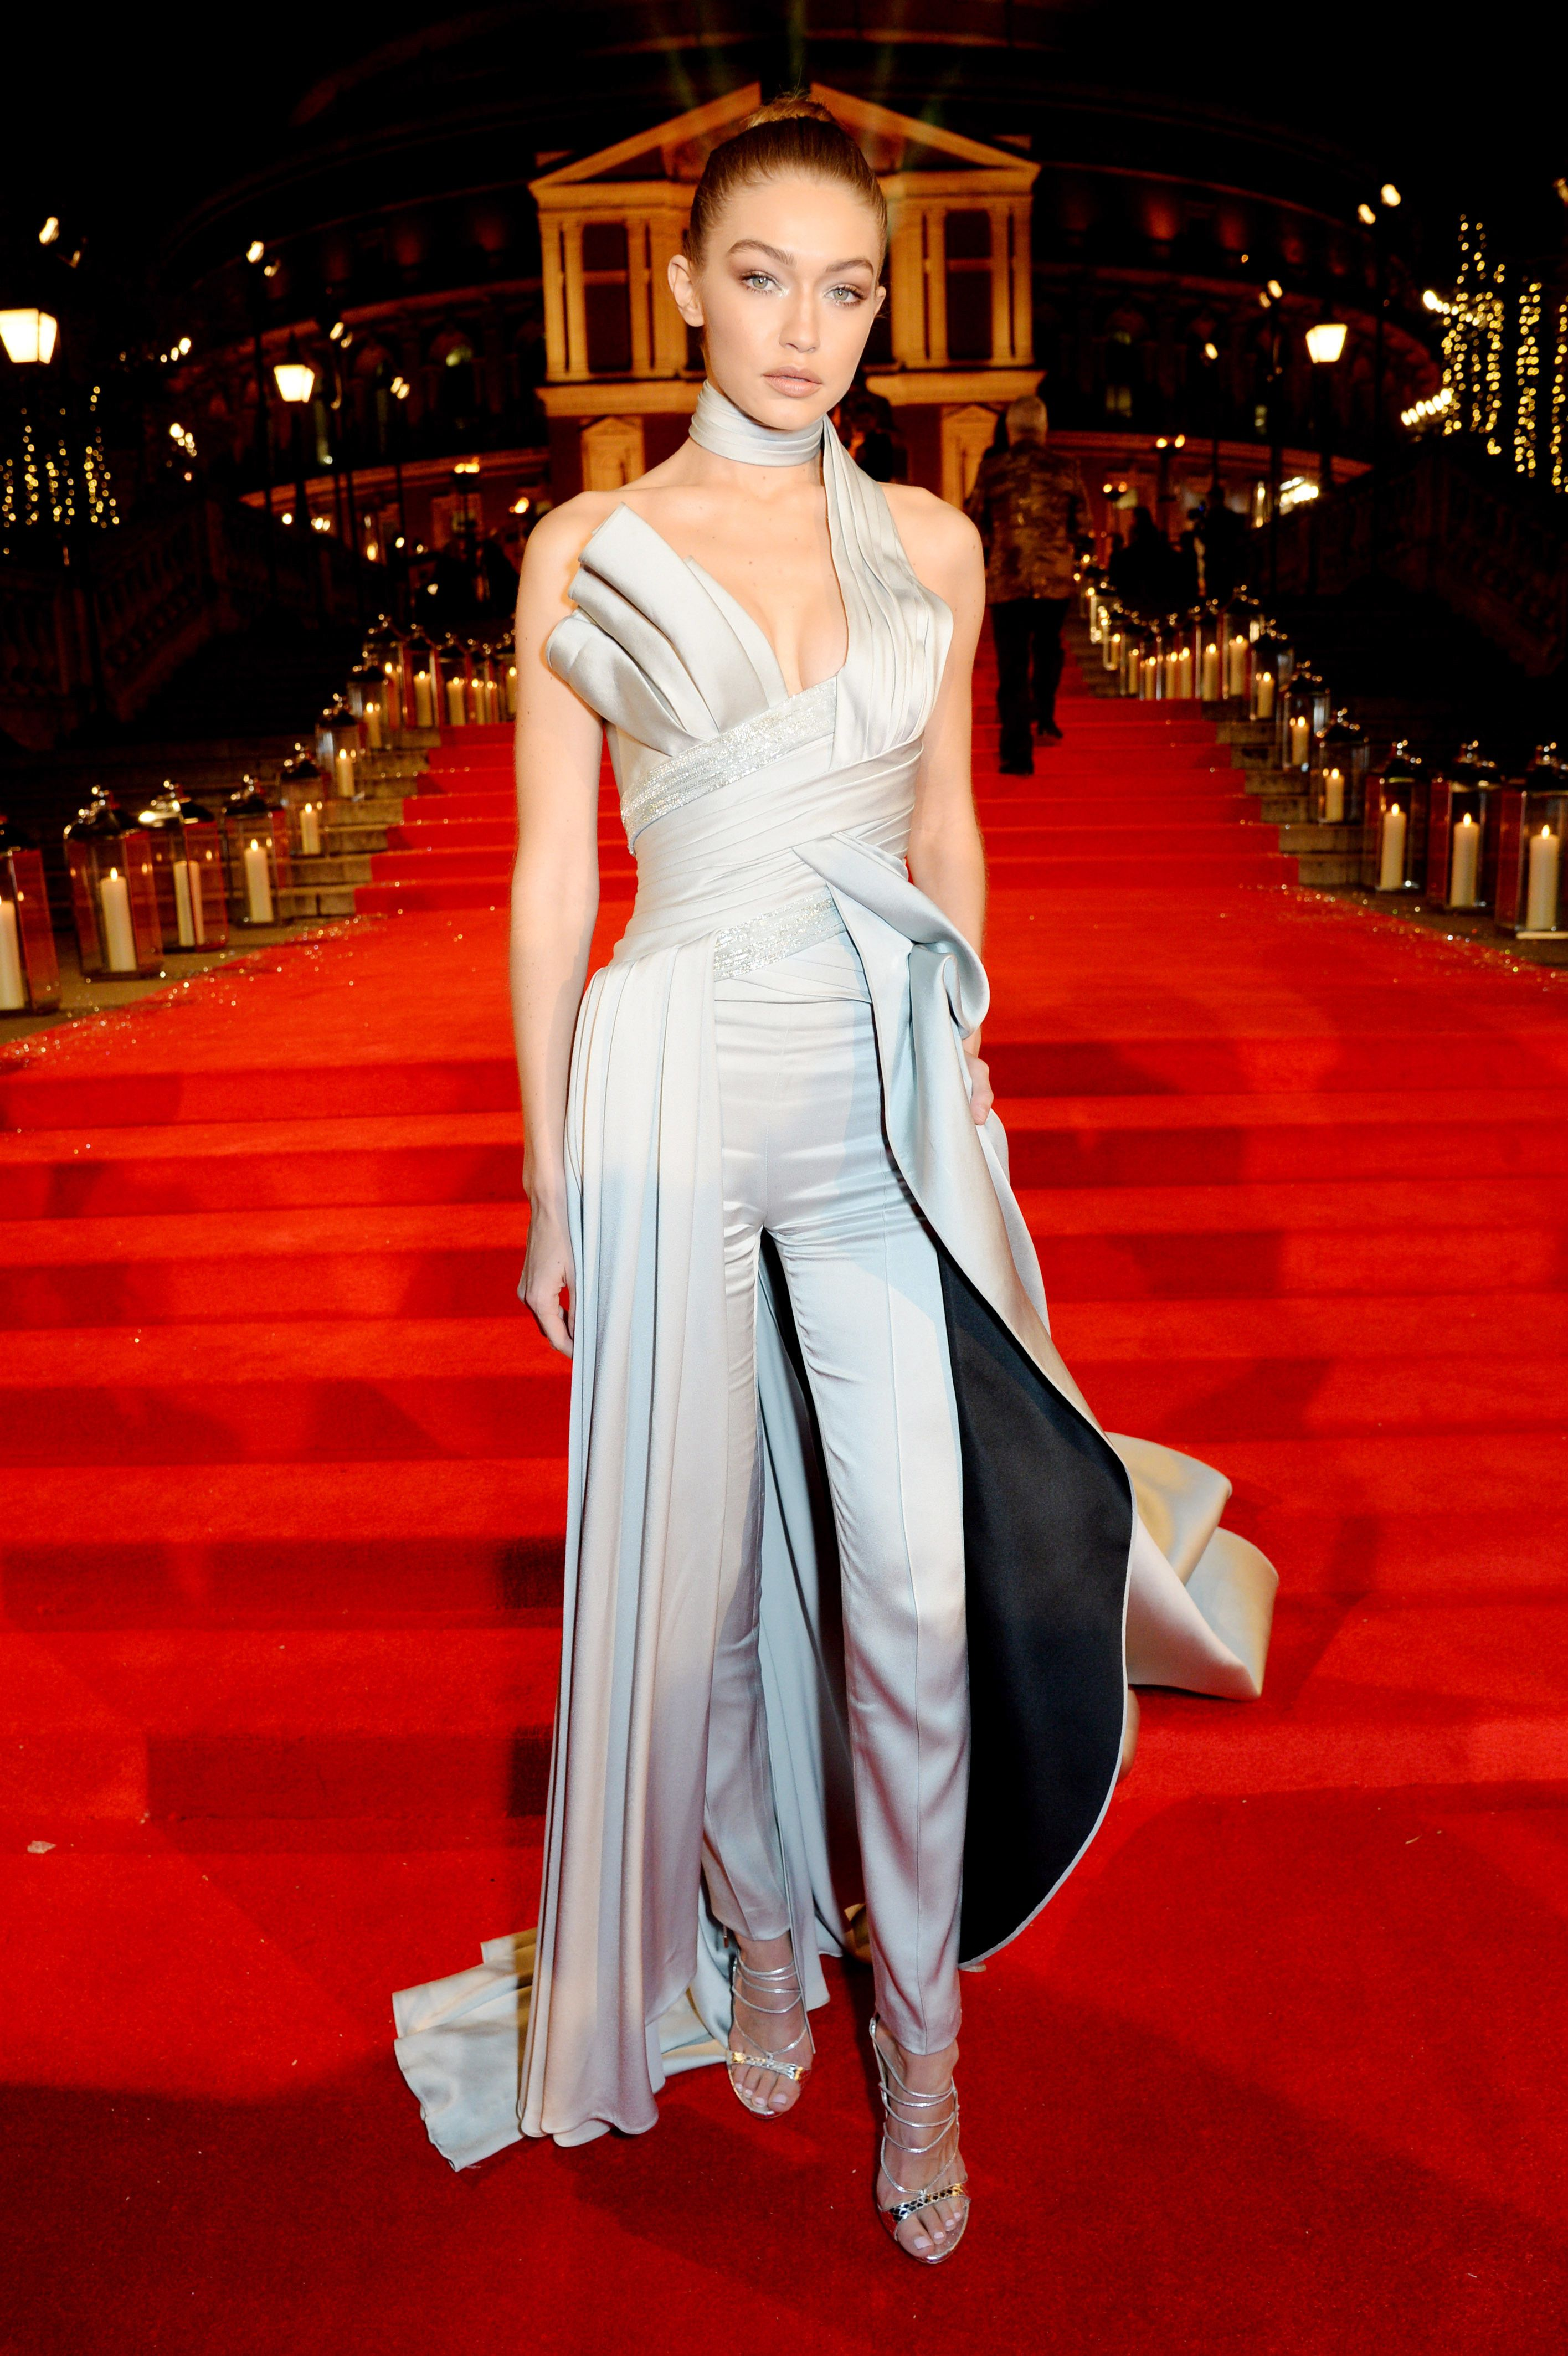 And The International Model Of The Year Is Fashion British Fashion Awards Hadid Style [ 4254 x 2831 Pixel ]